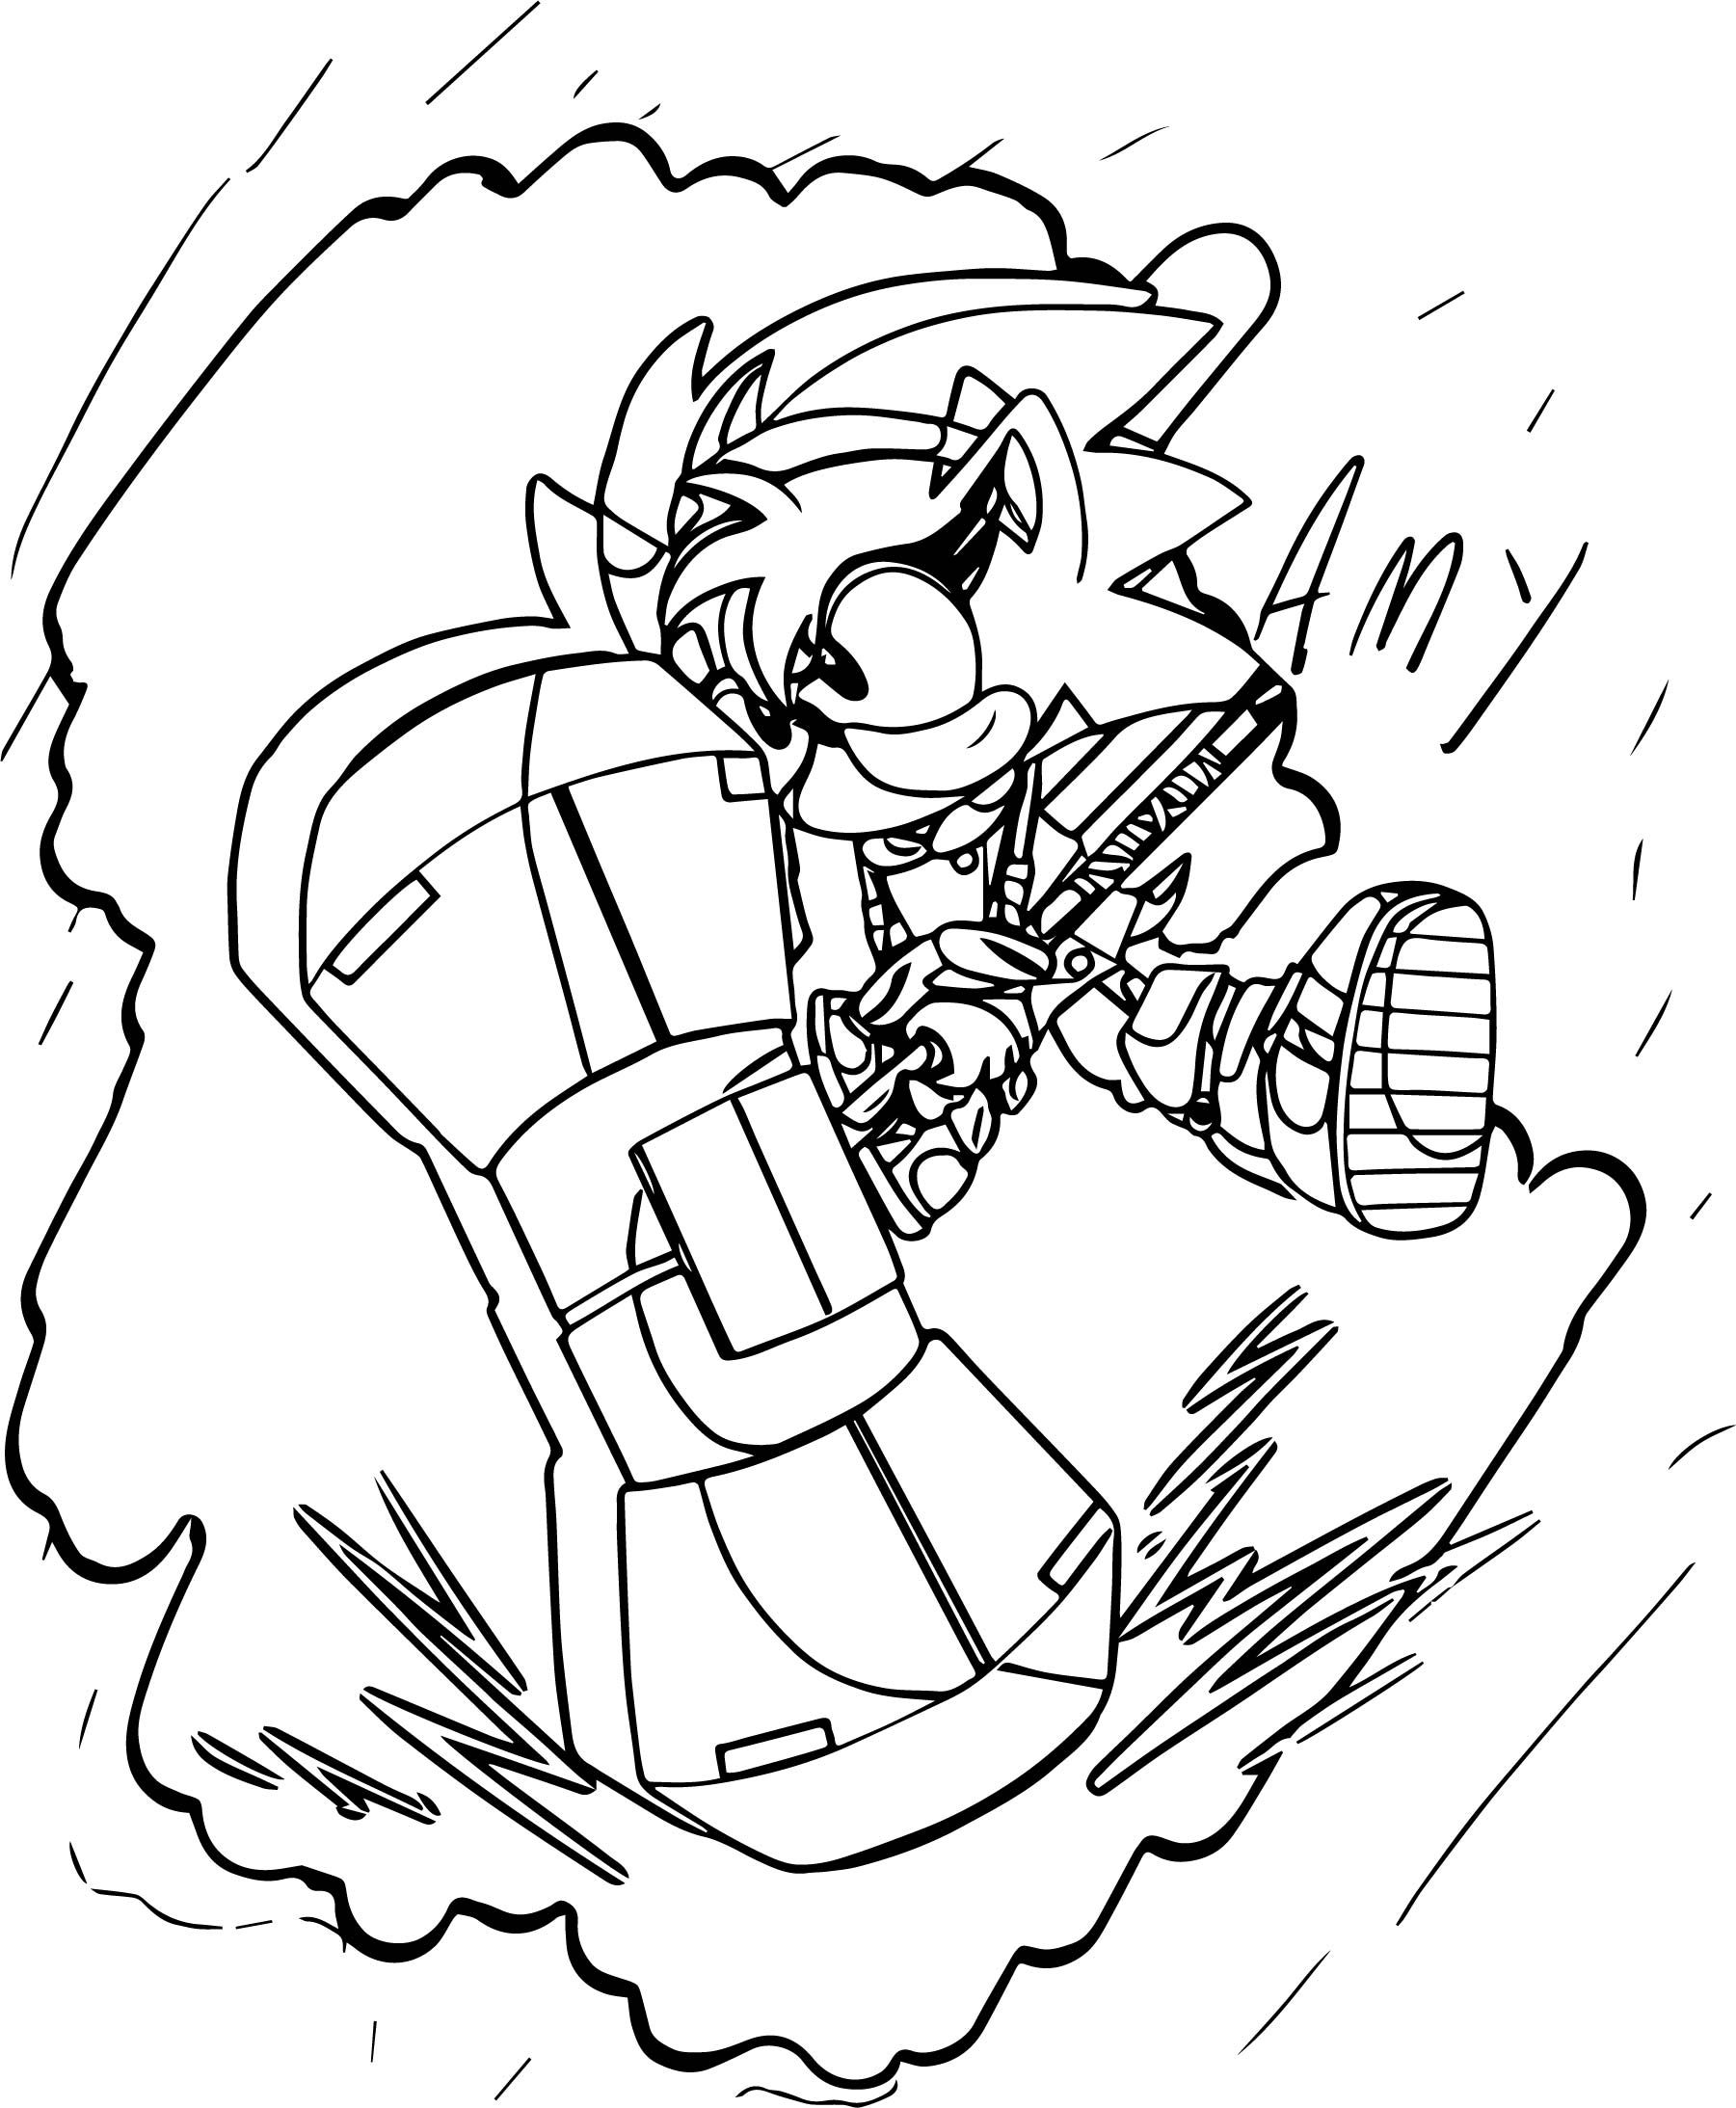 Cool Amy Rose Boom Coloring Page Coloring Pages Animal Coloring Pages Coloring Books